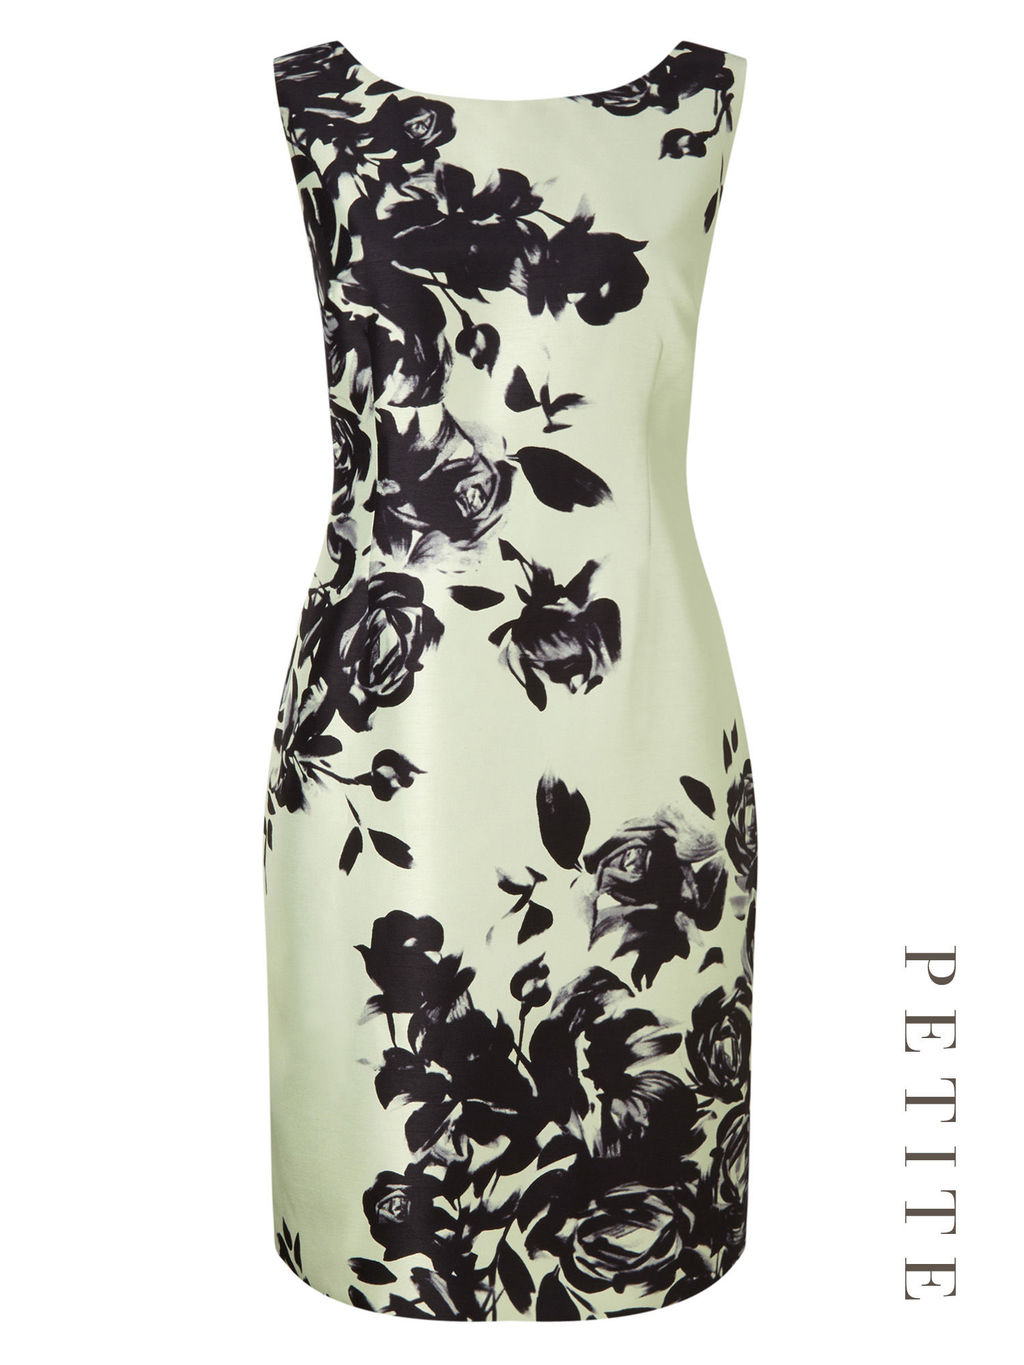 Petite Placement Floral Dress - style: shift; length: mid thigh; neckline: round neck; fit: tailored/fitted; sleeve style: sleeveless; predominant colour: pistachio; secondary colour: black; fibres: polyester/polyamide - 100%; occasions: occasion; sleeve length: sleeveless; texture group: structured shiny - satin/tafetta/silk etc.; pattern type: fabric; pattern size: big & busy; pattern: florals; season: s/s 2016; wardrobe: event